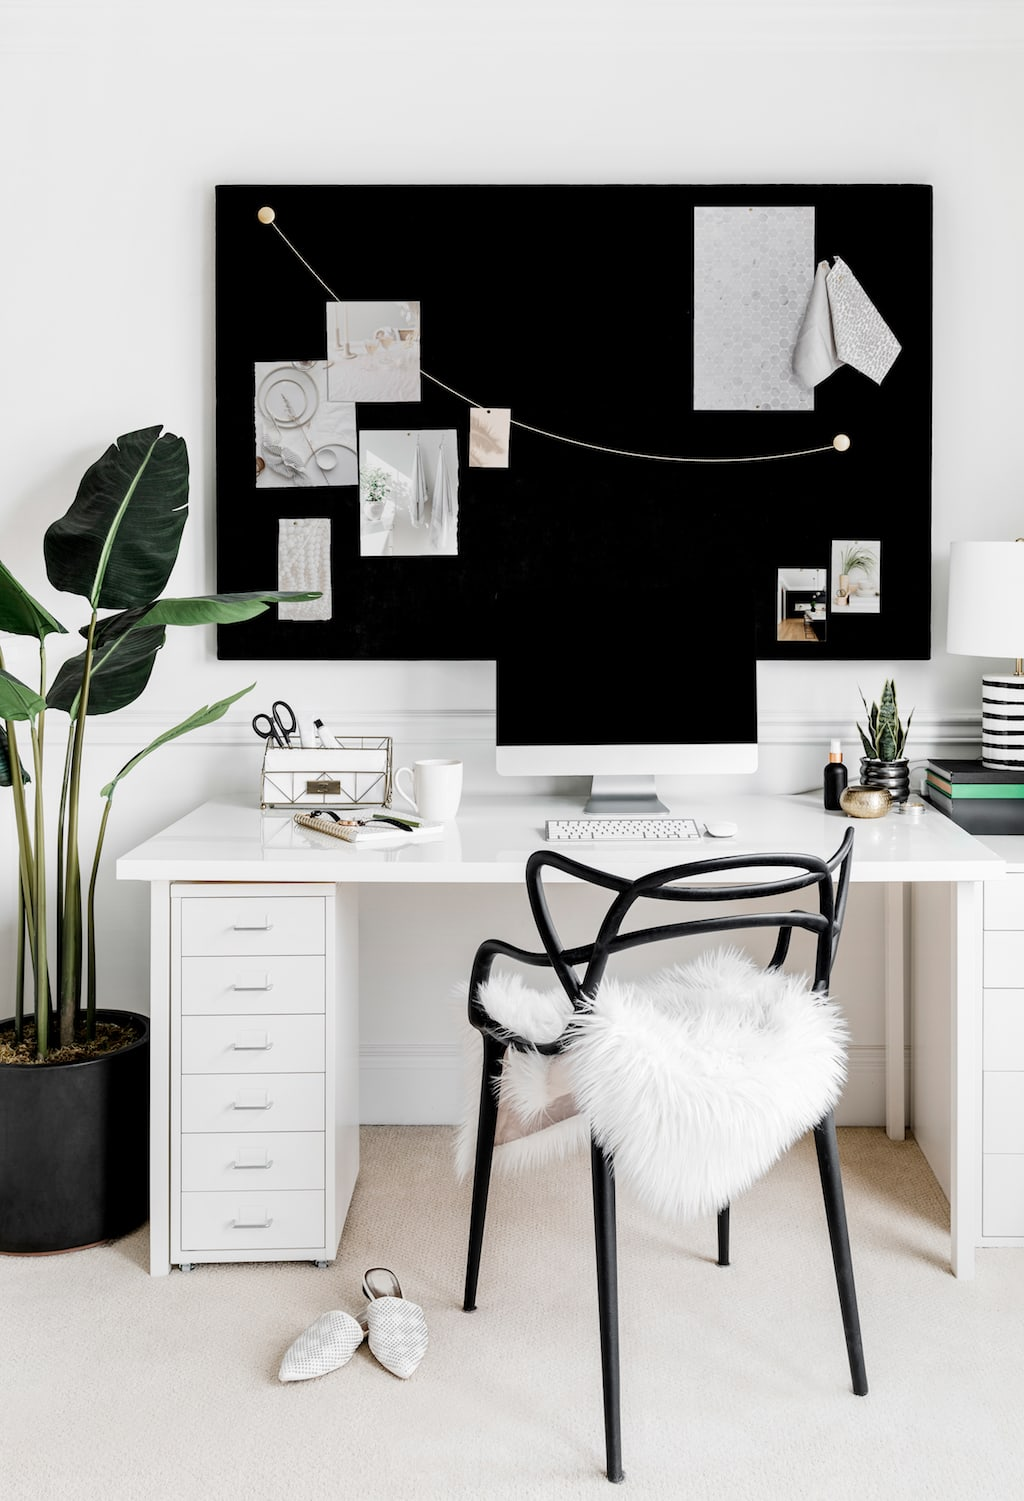 rejuvenate yourself - decorate your workspace